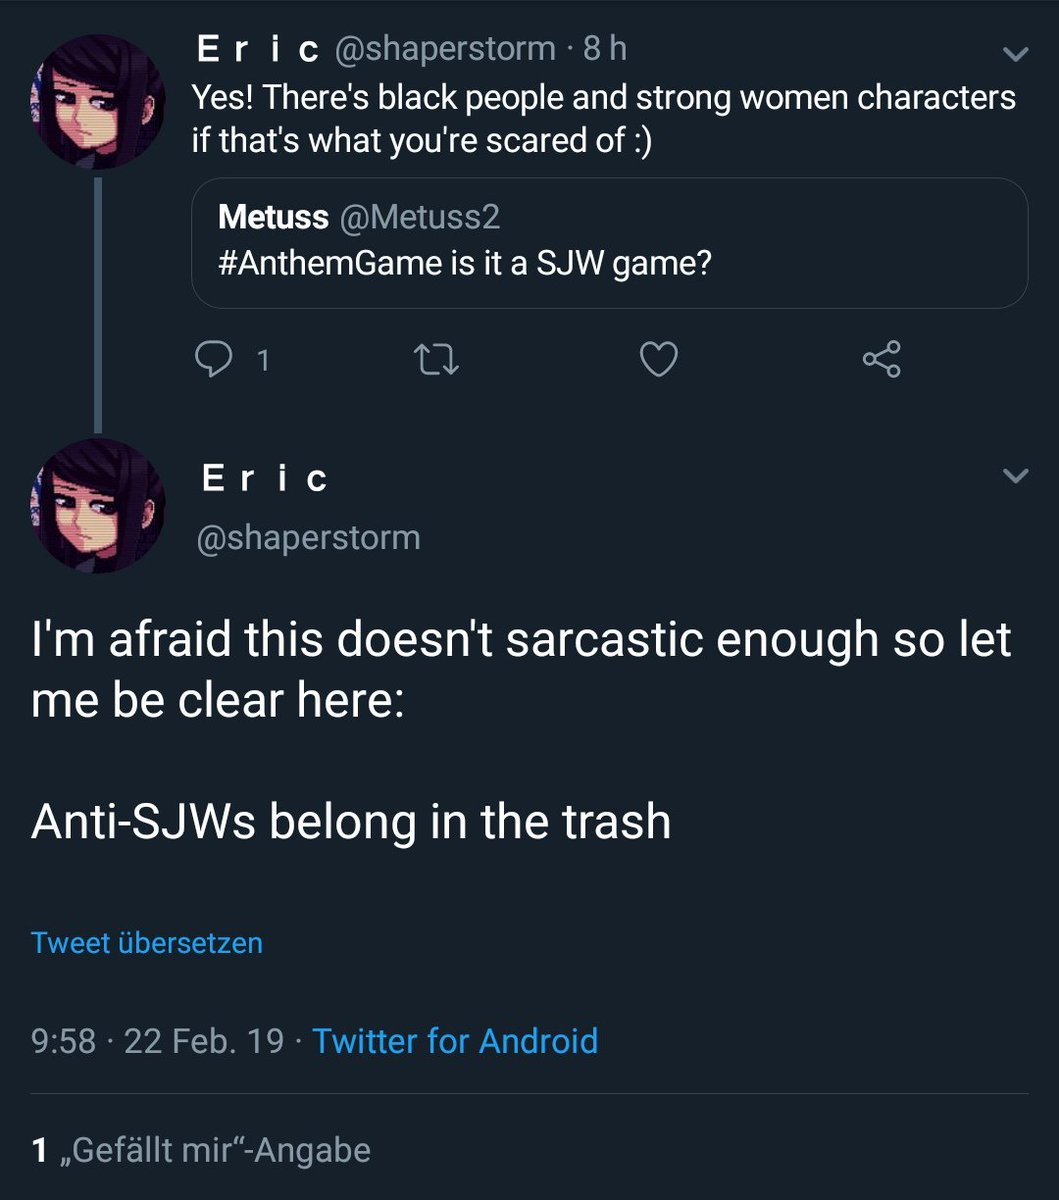 SJWs have no fucking idea what strong women characters are at all :&#39;)  SJW definition: Women are only strong when they emulate the Man.  Feminists/SJWs does not see femininity as something that can be &quot;strong&quot; <br>http://pic.twitter.com/jvTc6HvO7h